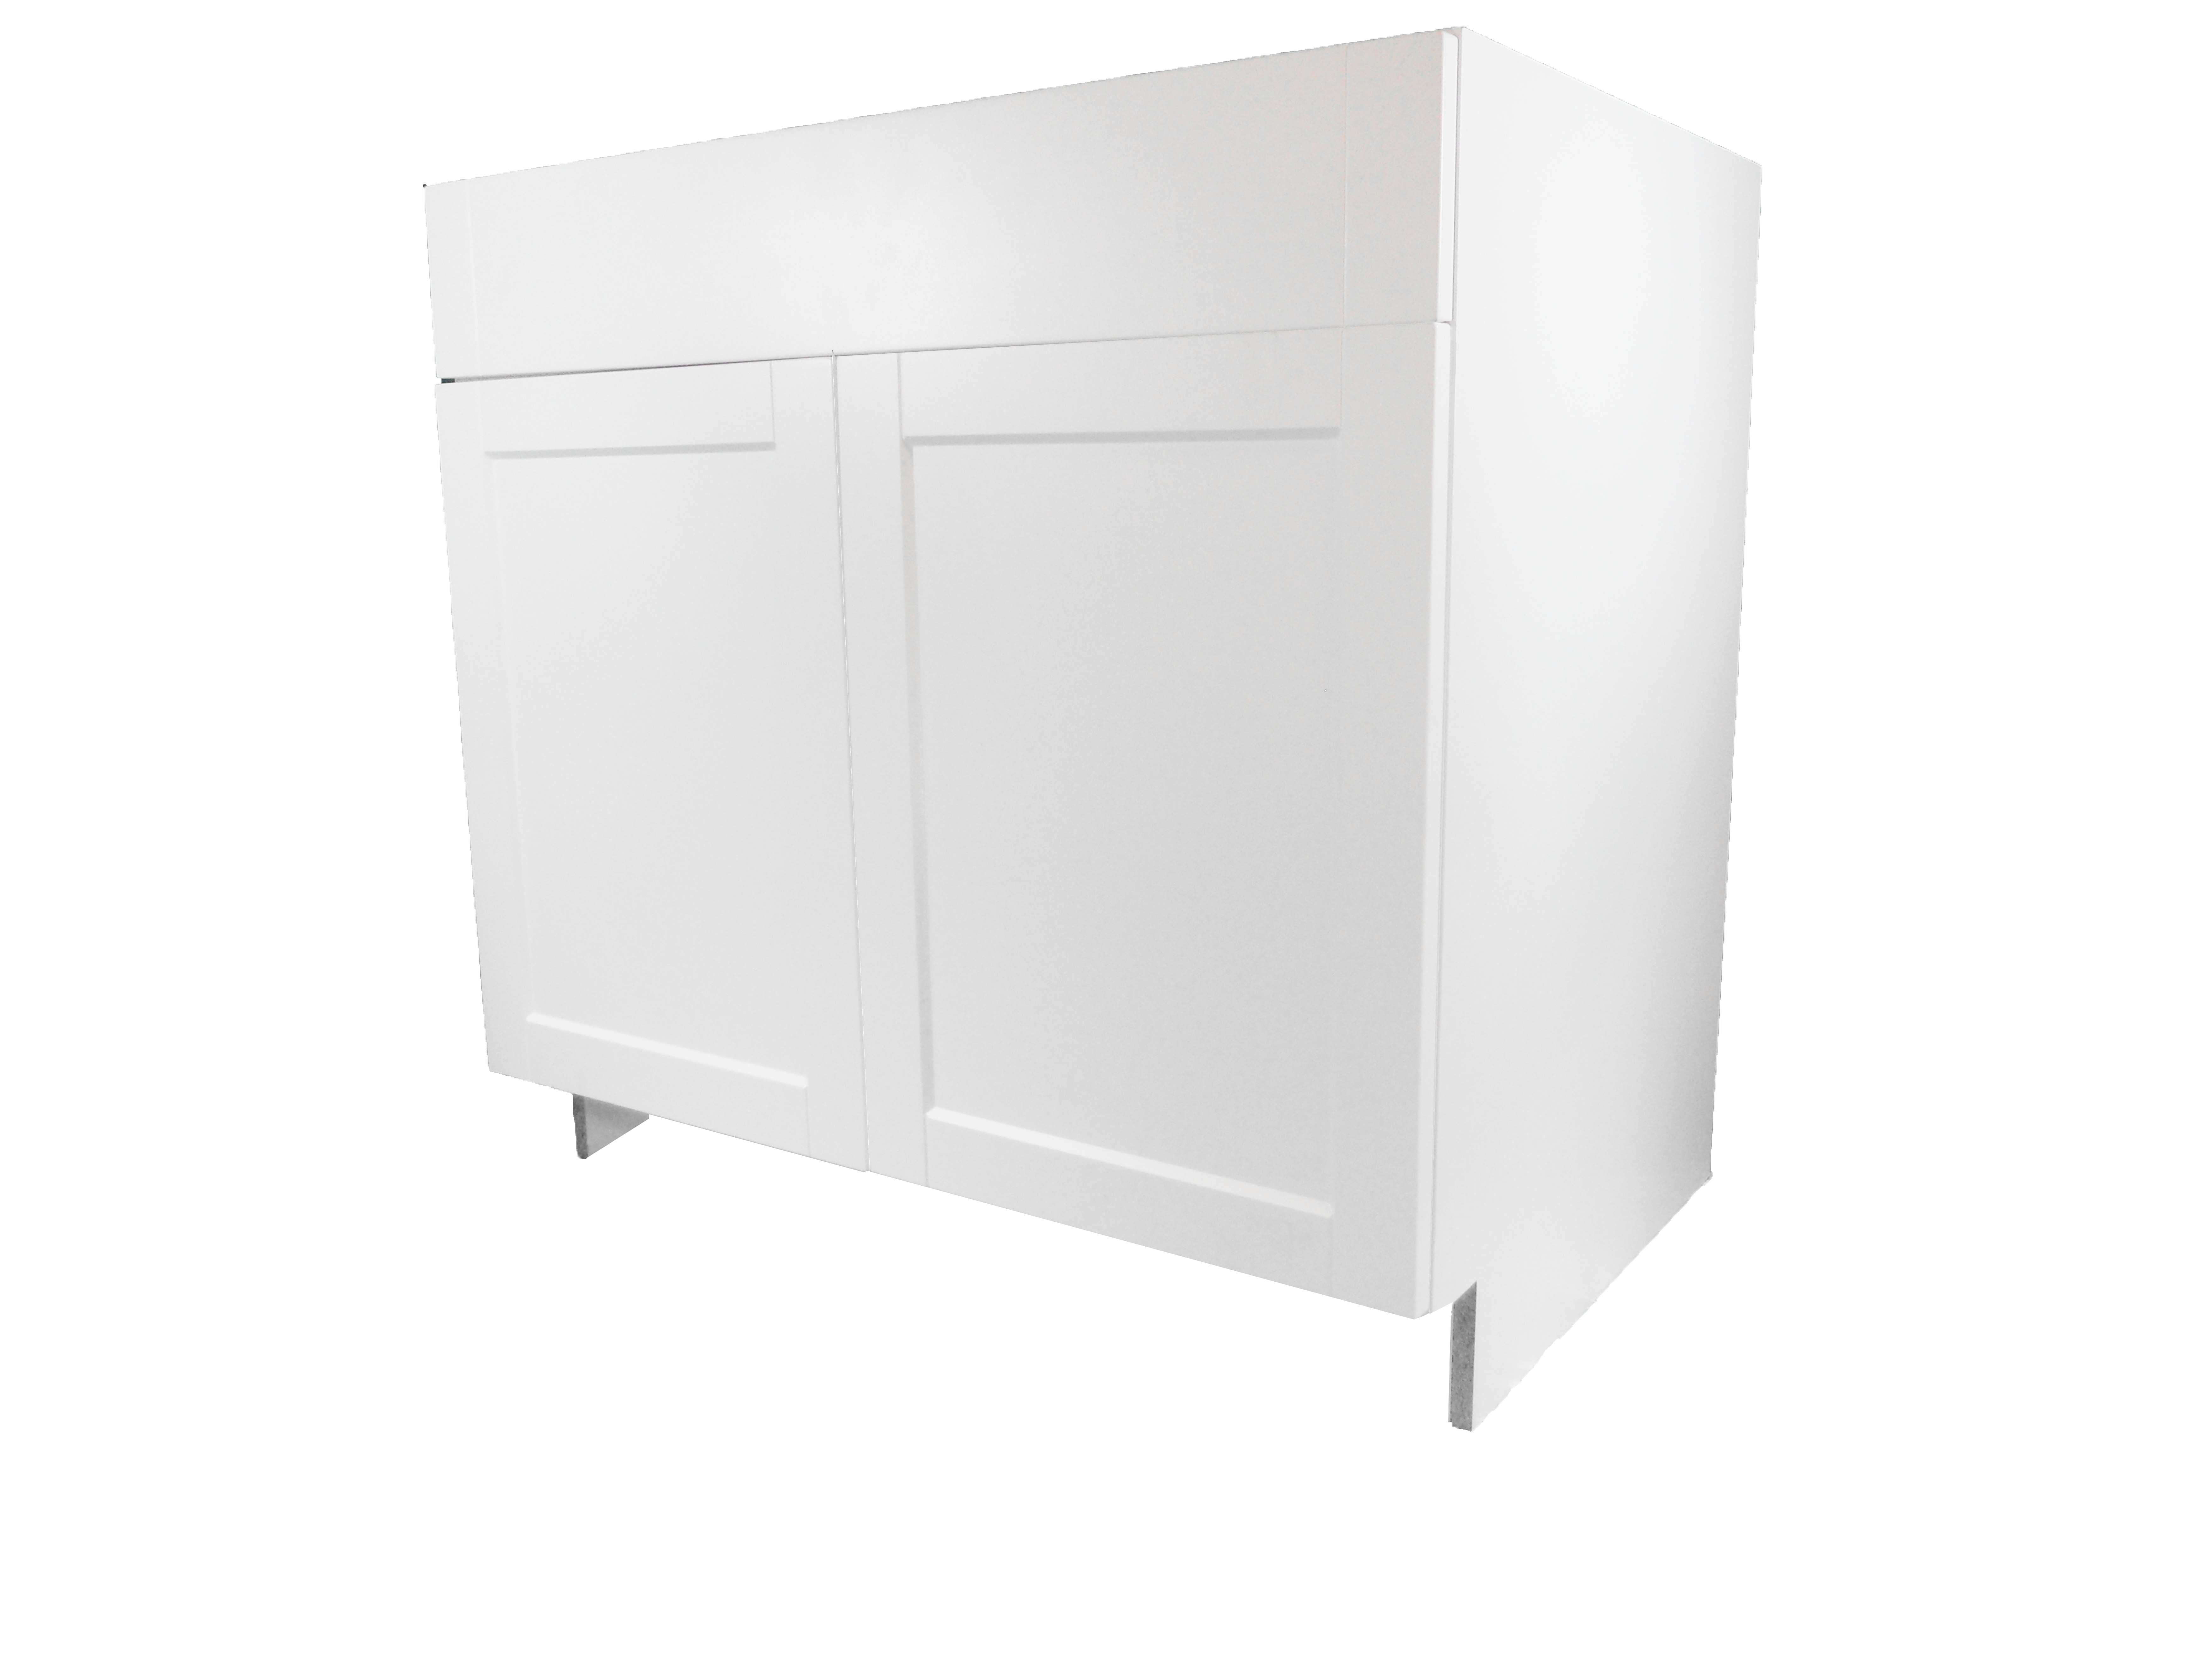 Base Cabinet with Drawer/2 Door / Flat Panel White / 33 Solaire White 0